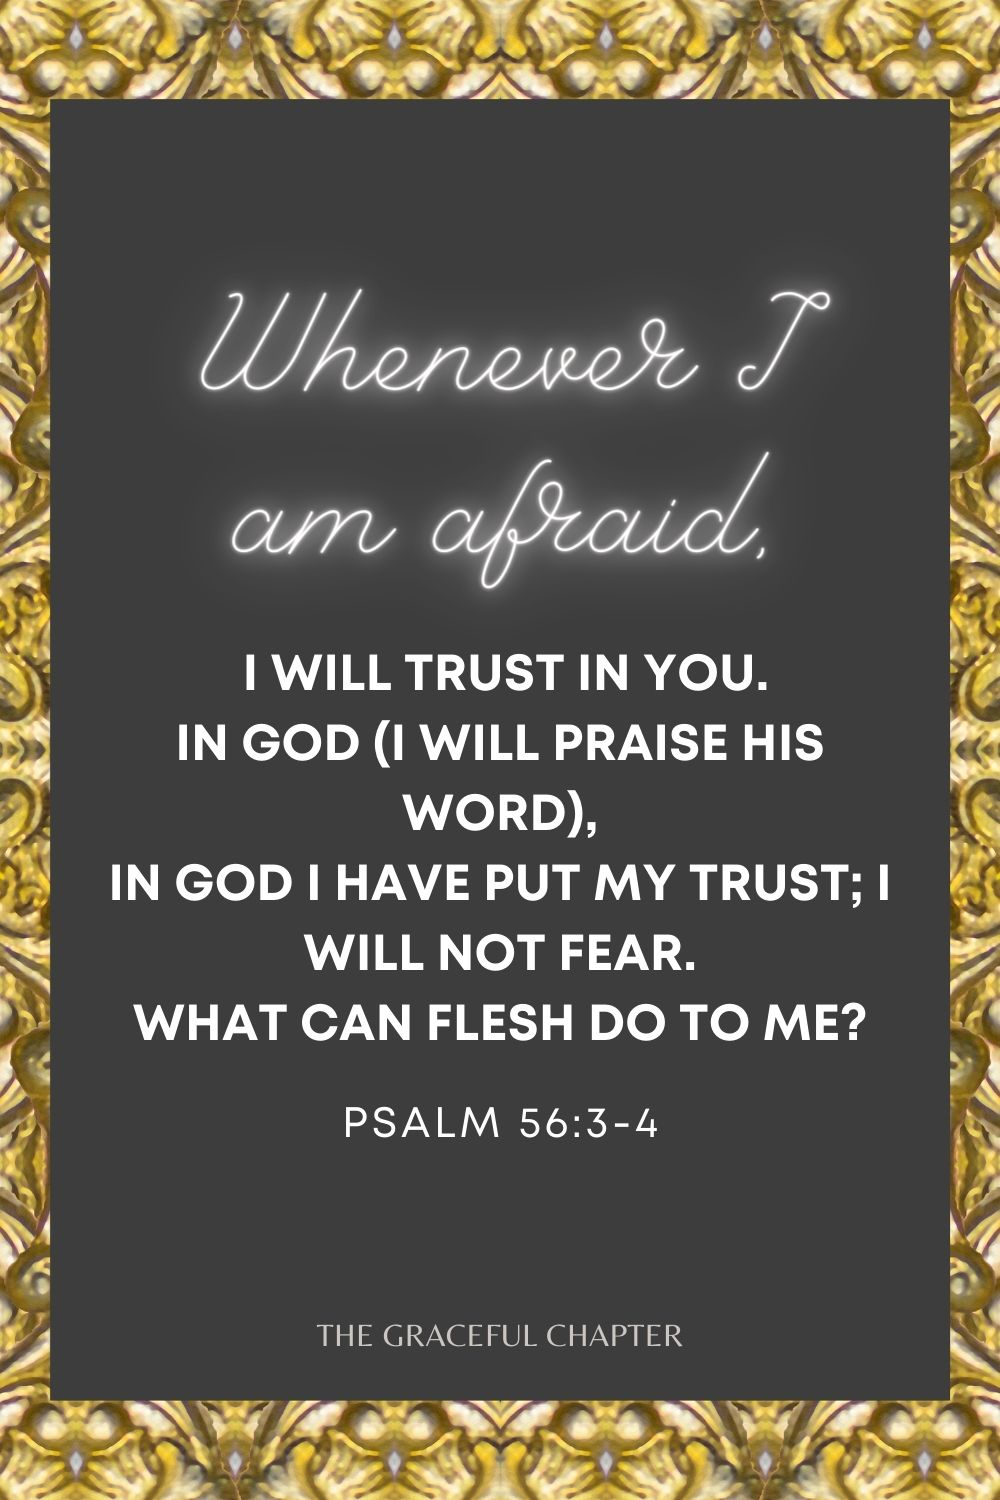 Whenever I am afraid, I will trust in You. In God (I will praise His word), In God I have put my trust; I will not fear. What can flesh do to me? Psalm 56:3-4